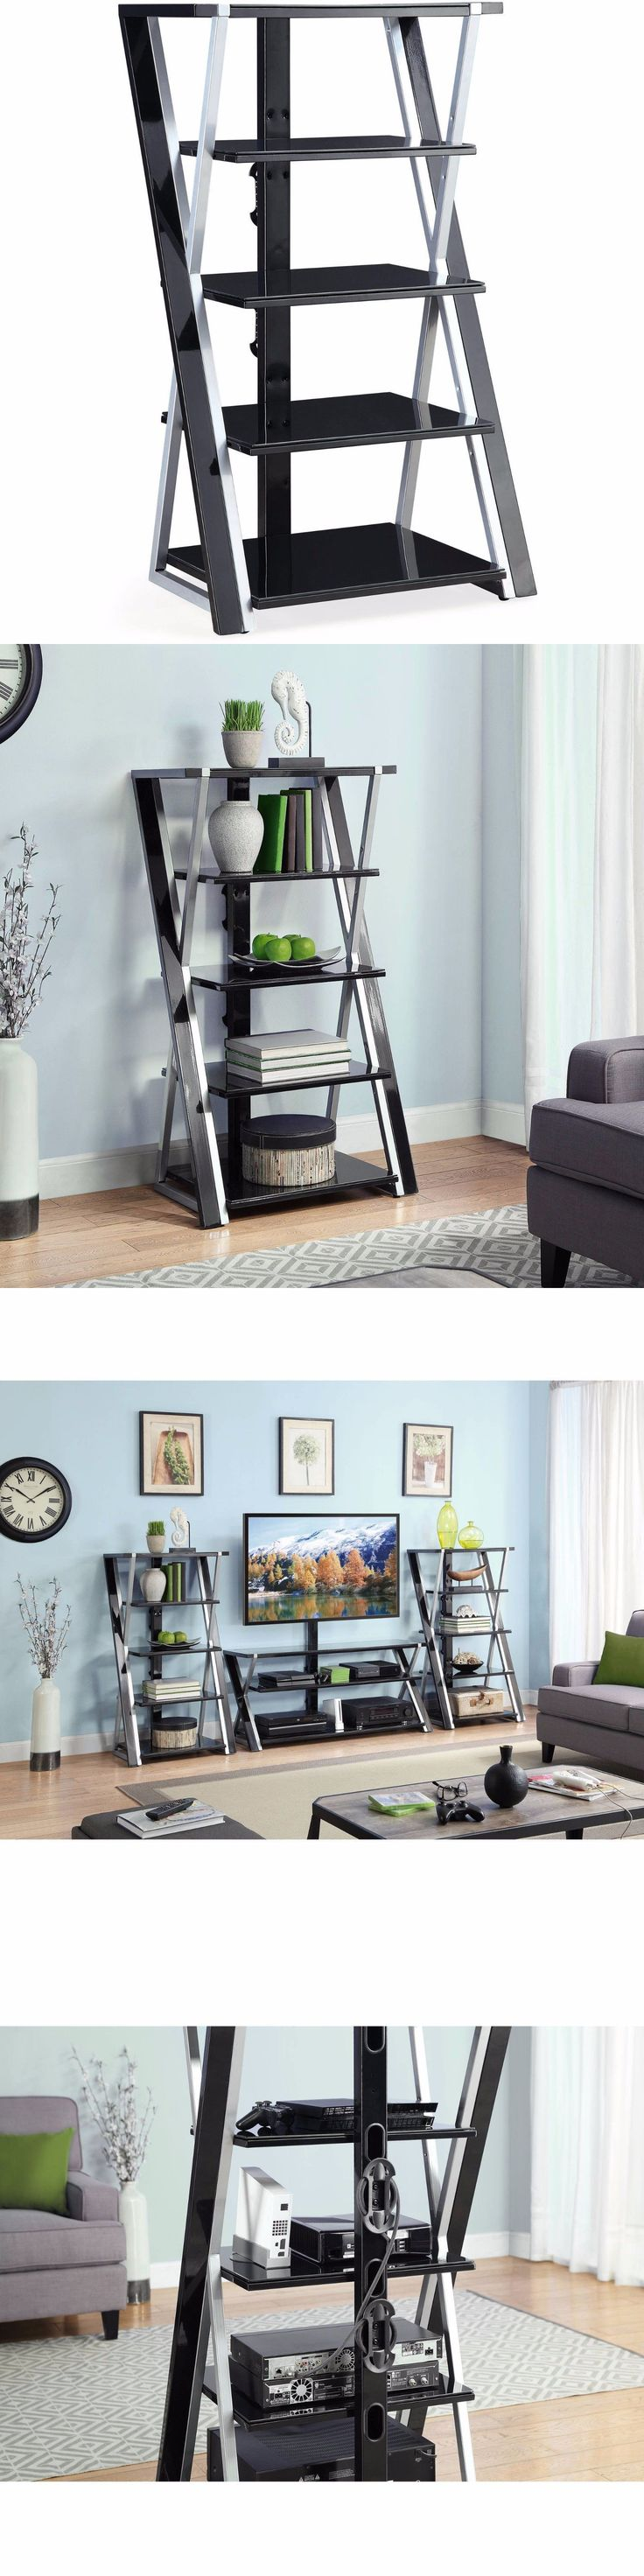 Entertainment Units TV Stands: Stereo Rack Tower Storage Audio Stand Shelves Equipment Cabinet Table Console -> BUY IT NOW ONLY: $90.97 on eBay!